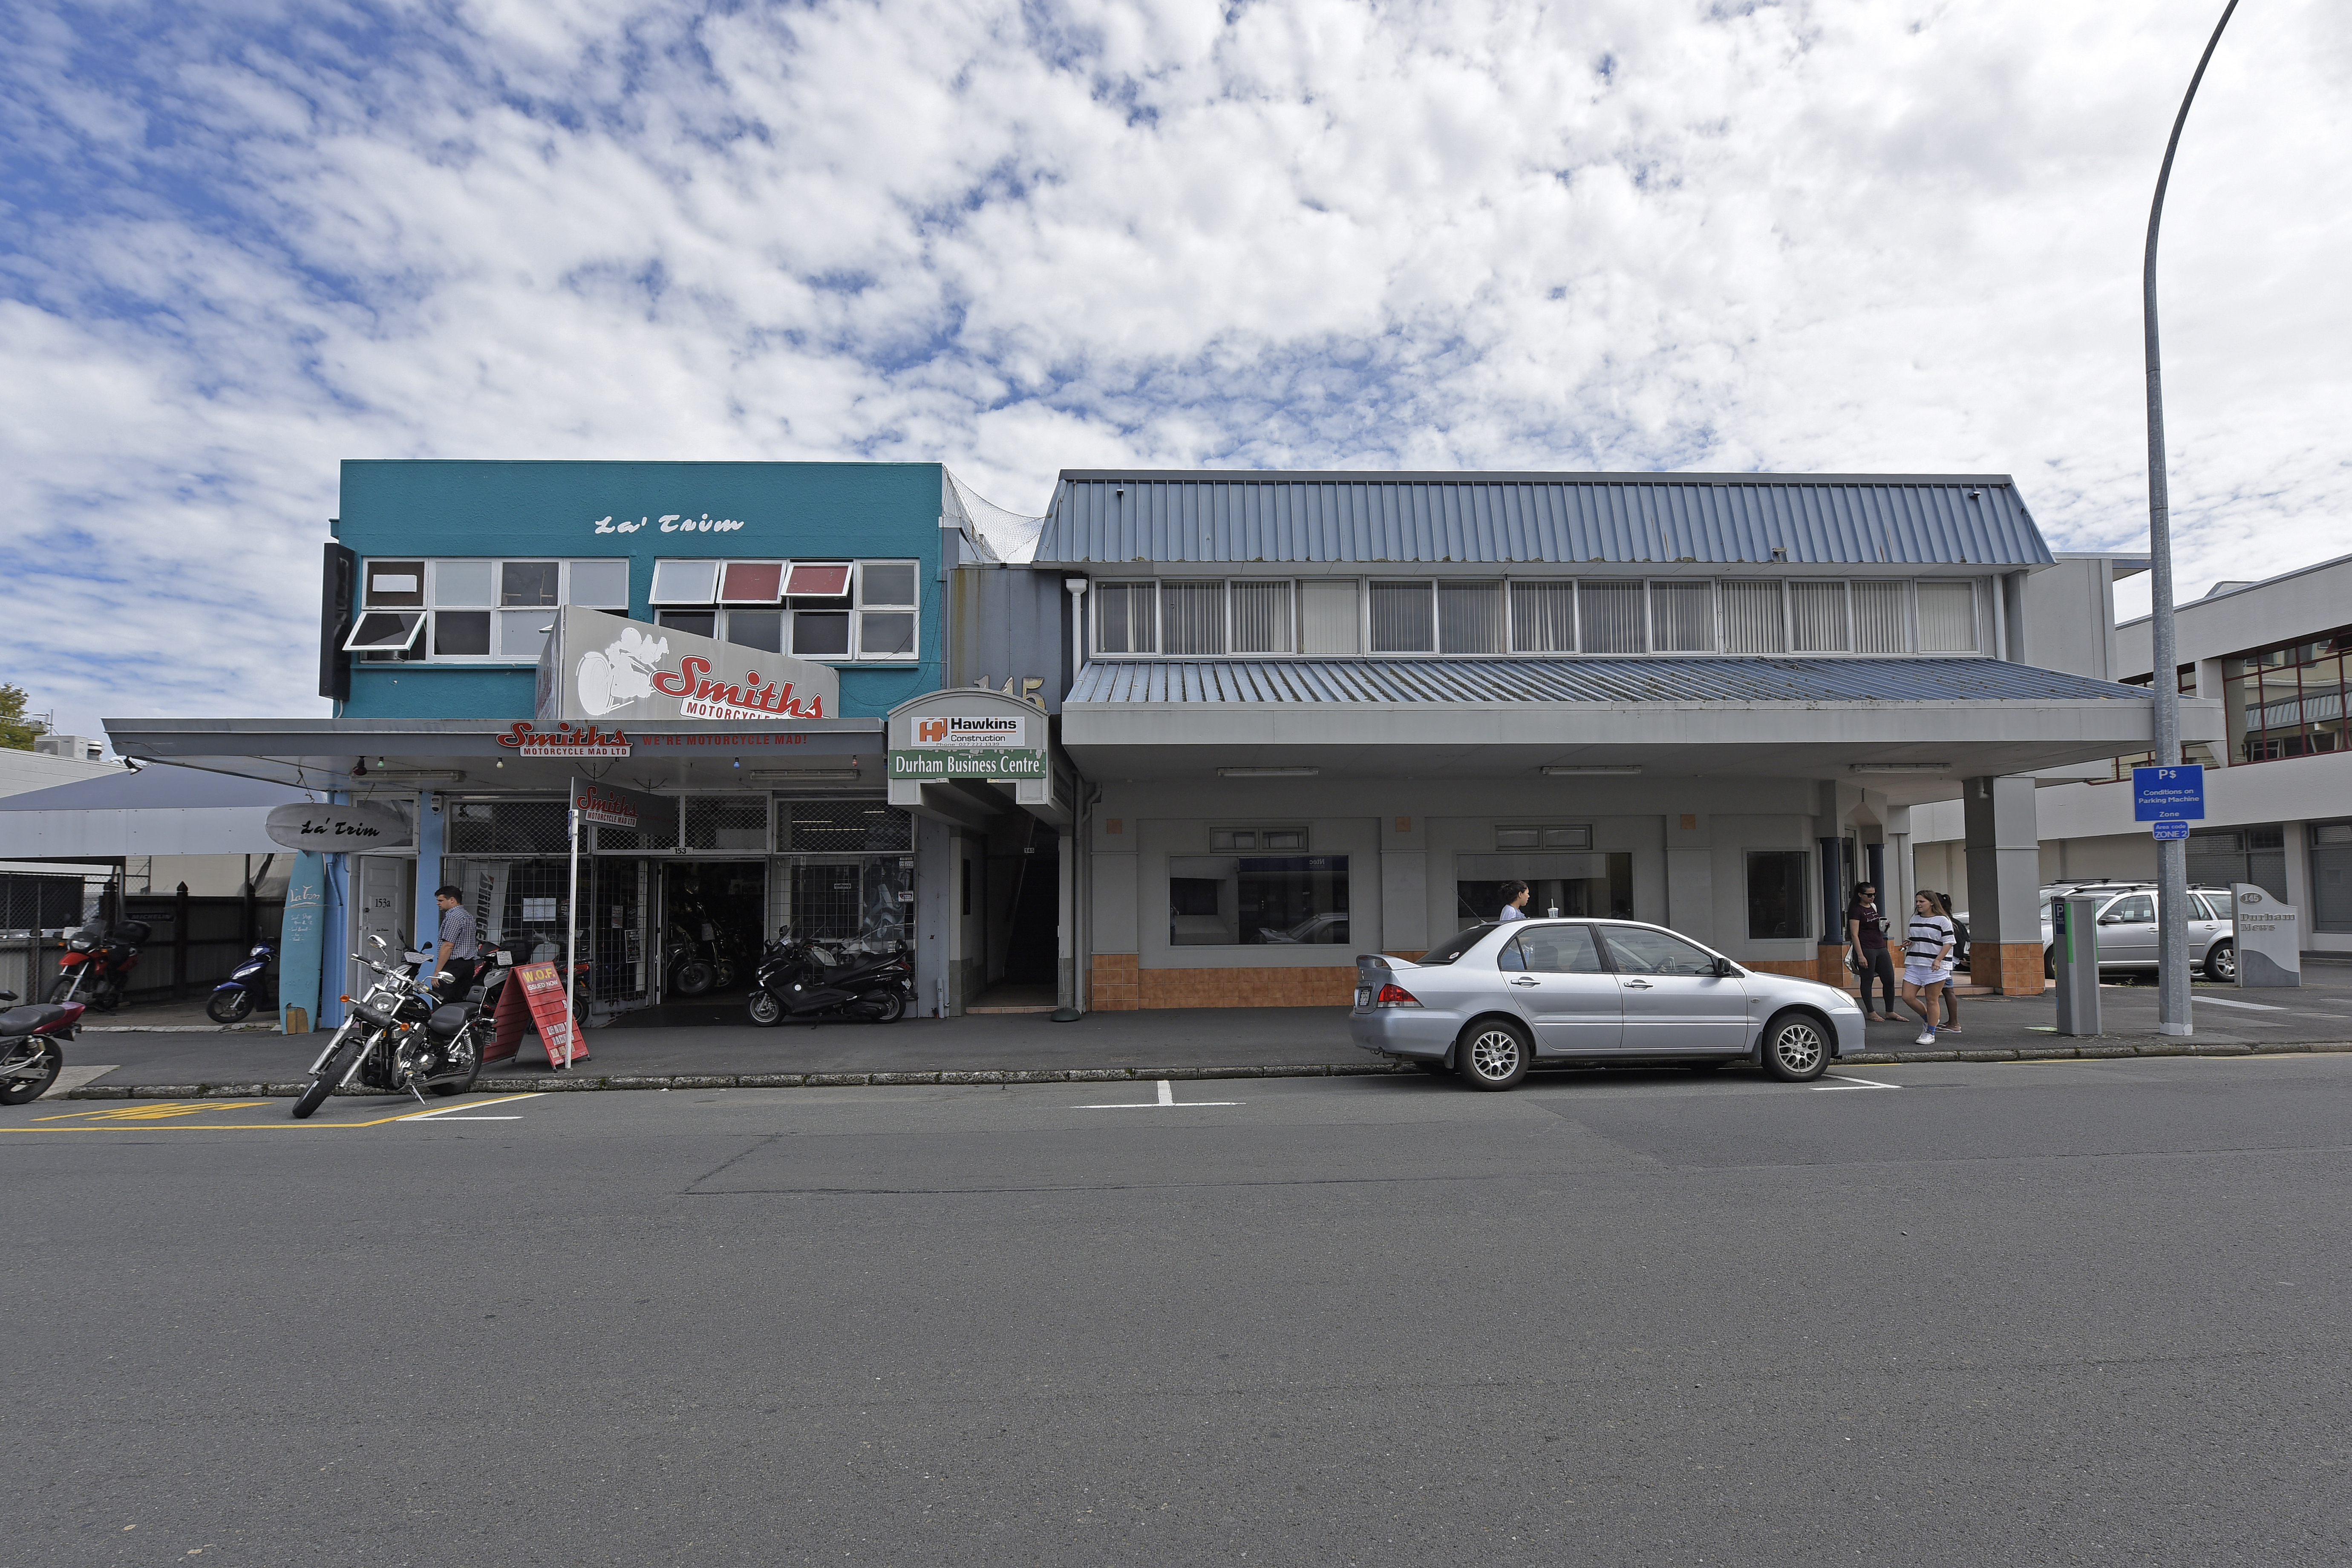 40m Student Hostel Planned For Tauranga Downtown Will Have No